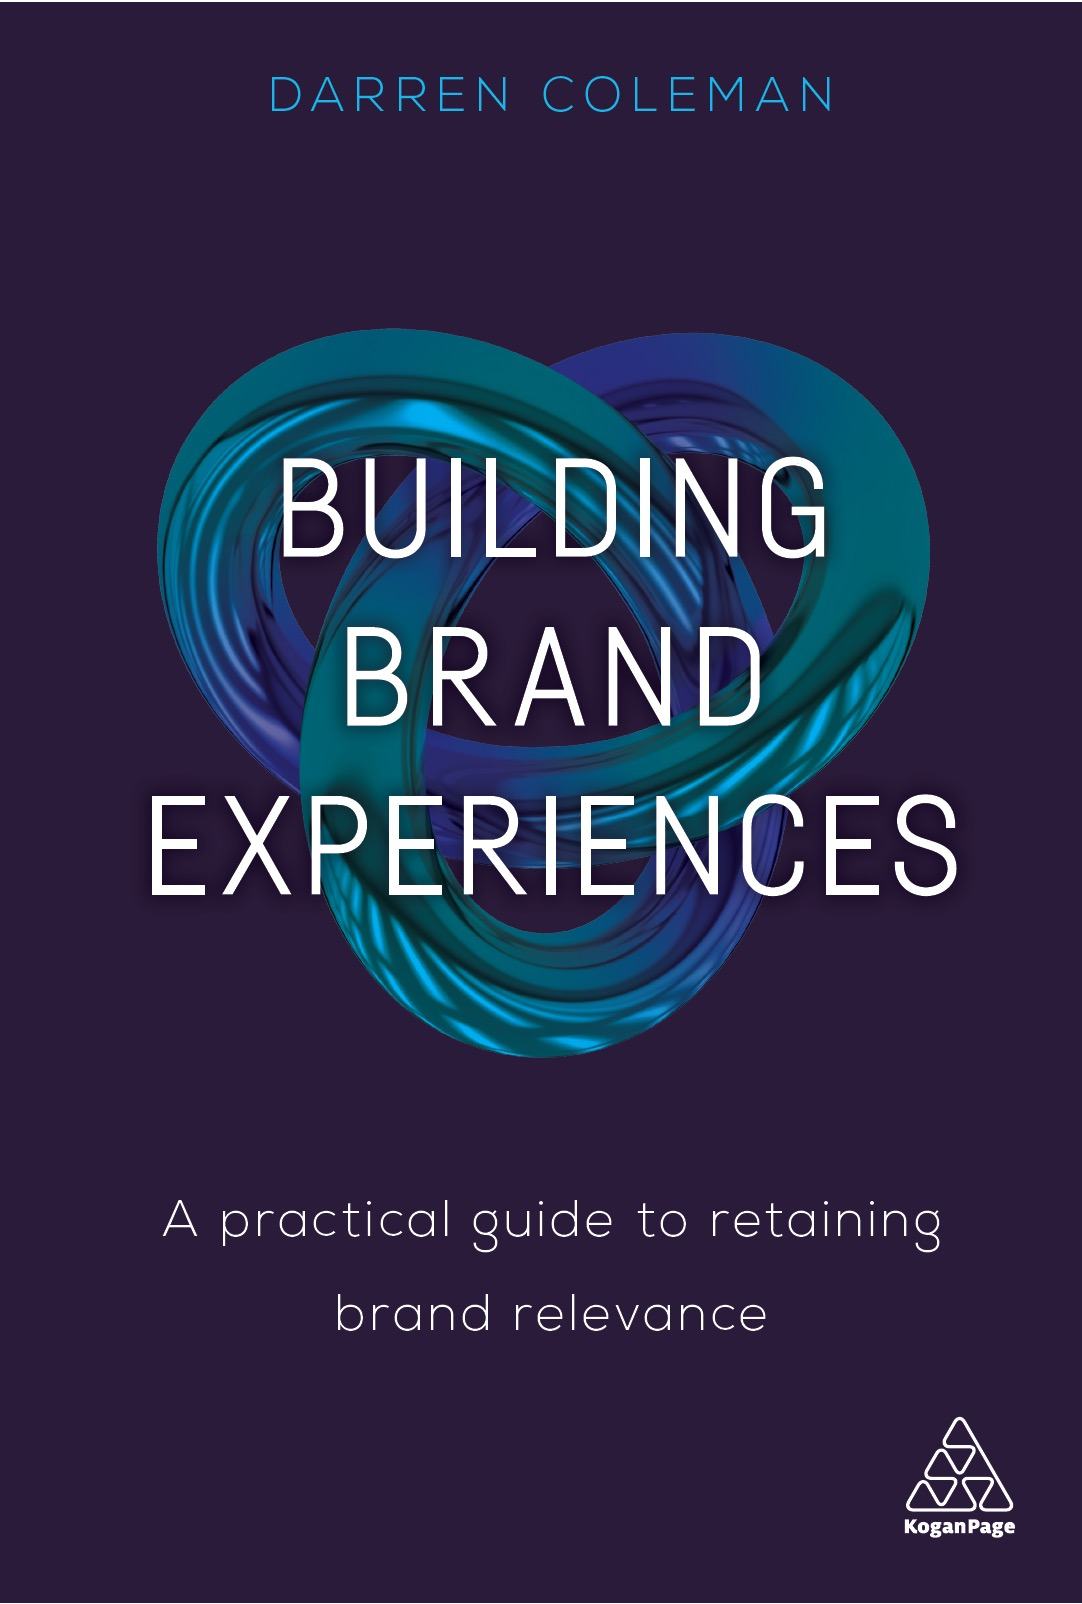 Wavelength's Darren Coleman commissioned to author Brand Experiences Book